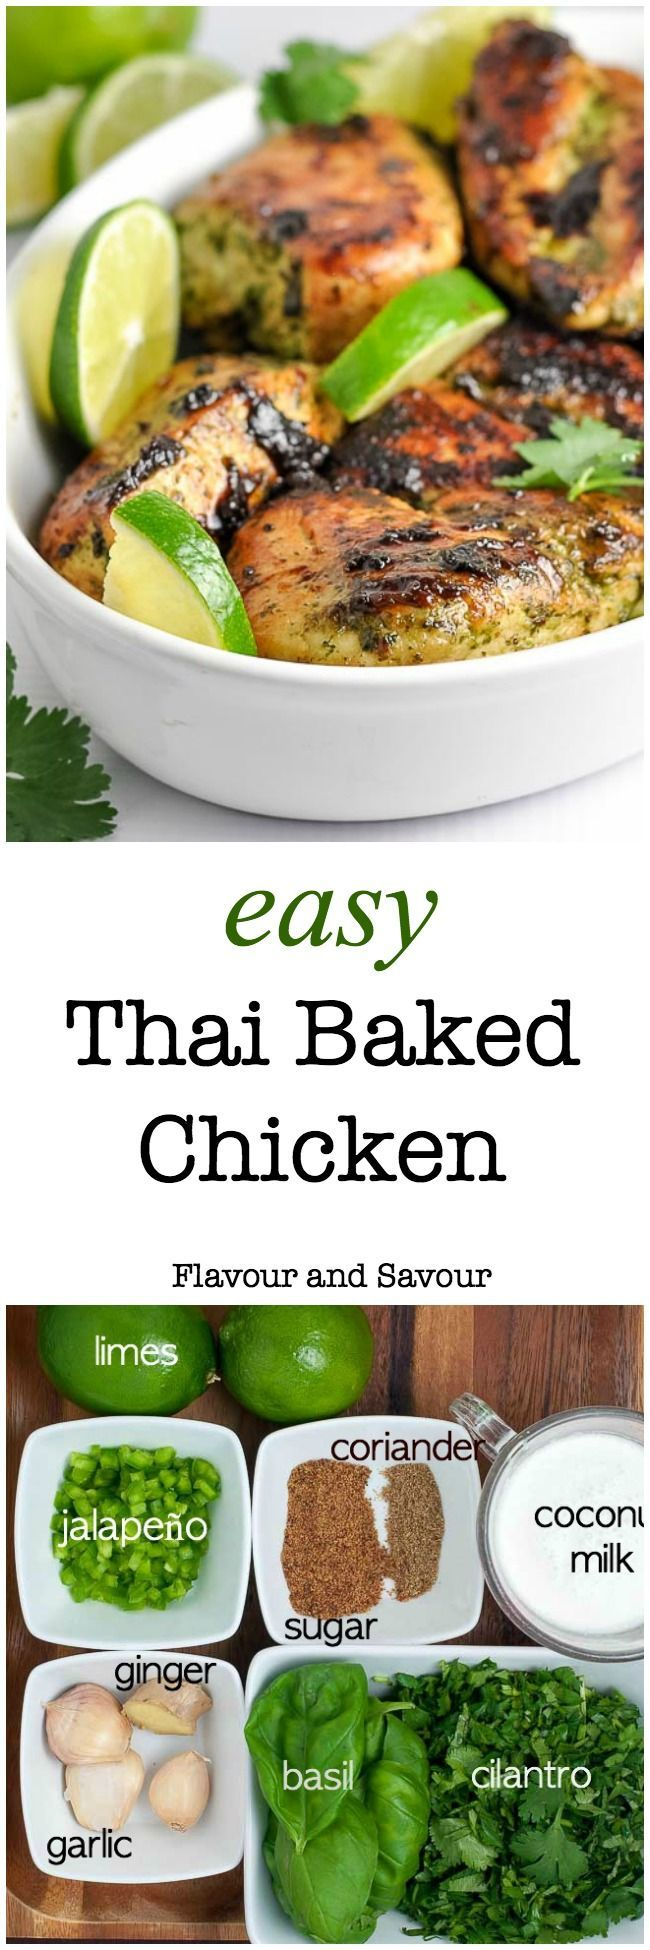 Easy Thai Baked Chicken. An easy make-ahead meal for busy nights, full of your favourite Thai flavours. The marinade for this easy recipe blends and balances those flavours harmoniously. Cilantro, jalapeño, ginger, basil, garlic and coriander all play together to produce this aromatic, slightly spicy chicken dish that leaves you wanting more.|www.flavourandsavour.com